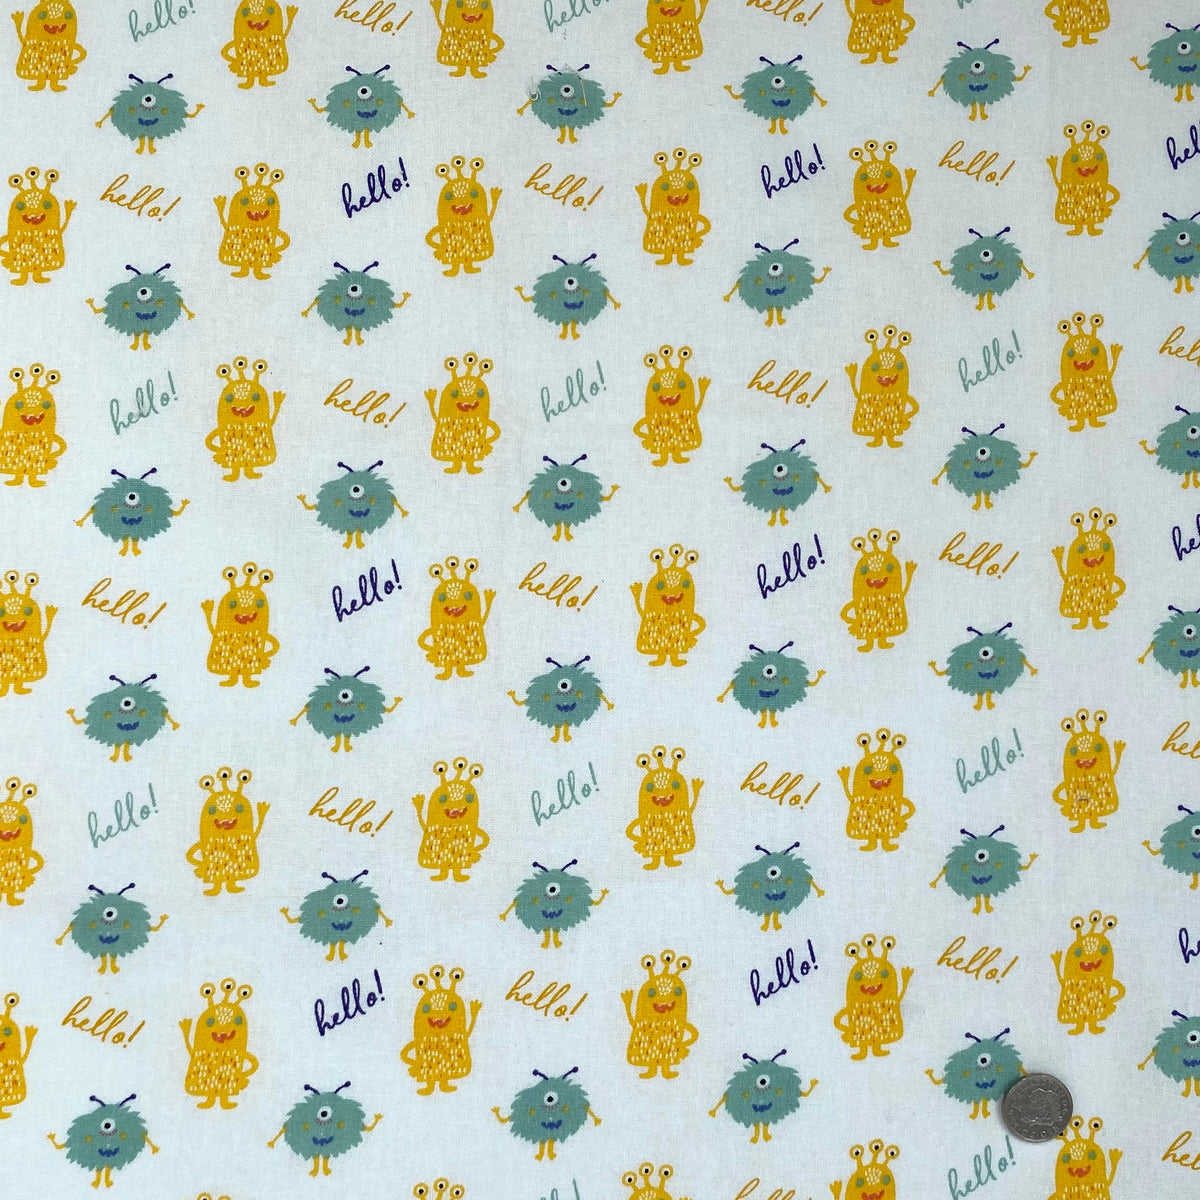 Cutest little friendly monster HELLO  100% Cotton  Fabric,  112cm wide sold per 1/2 metre